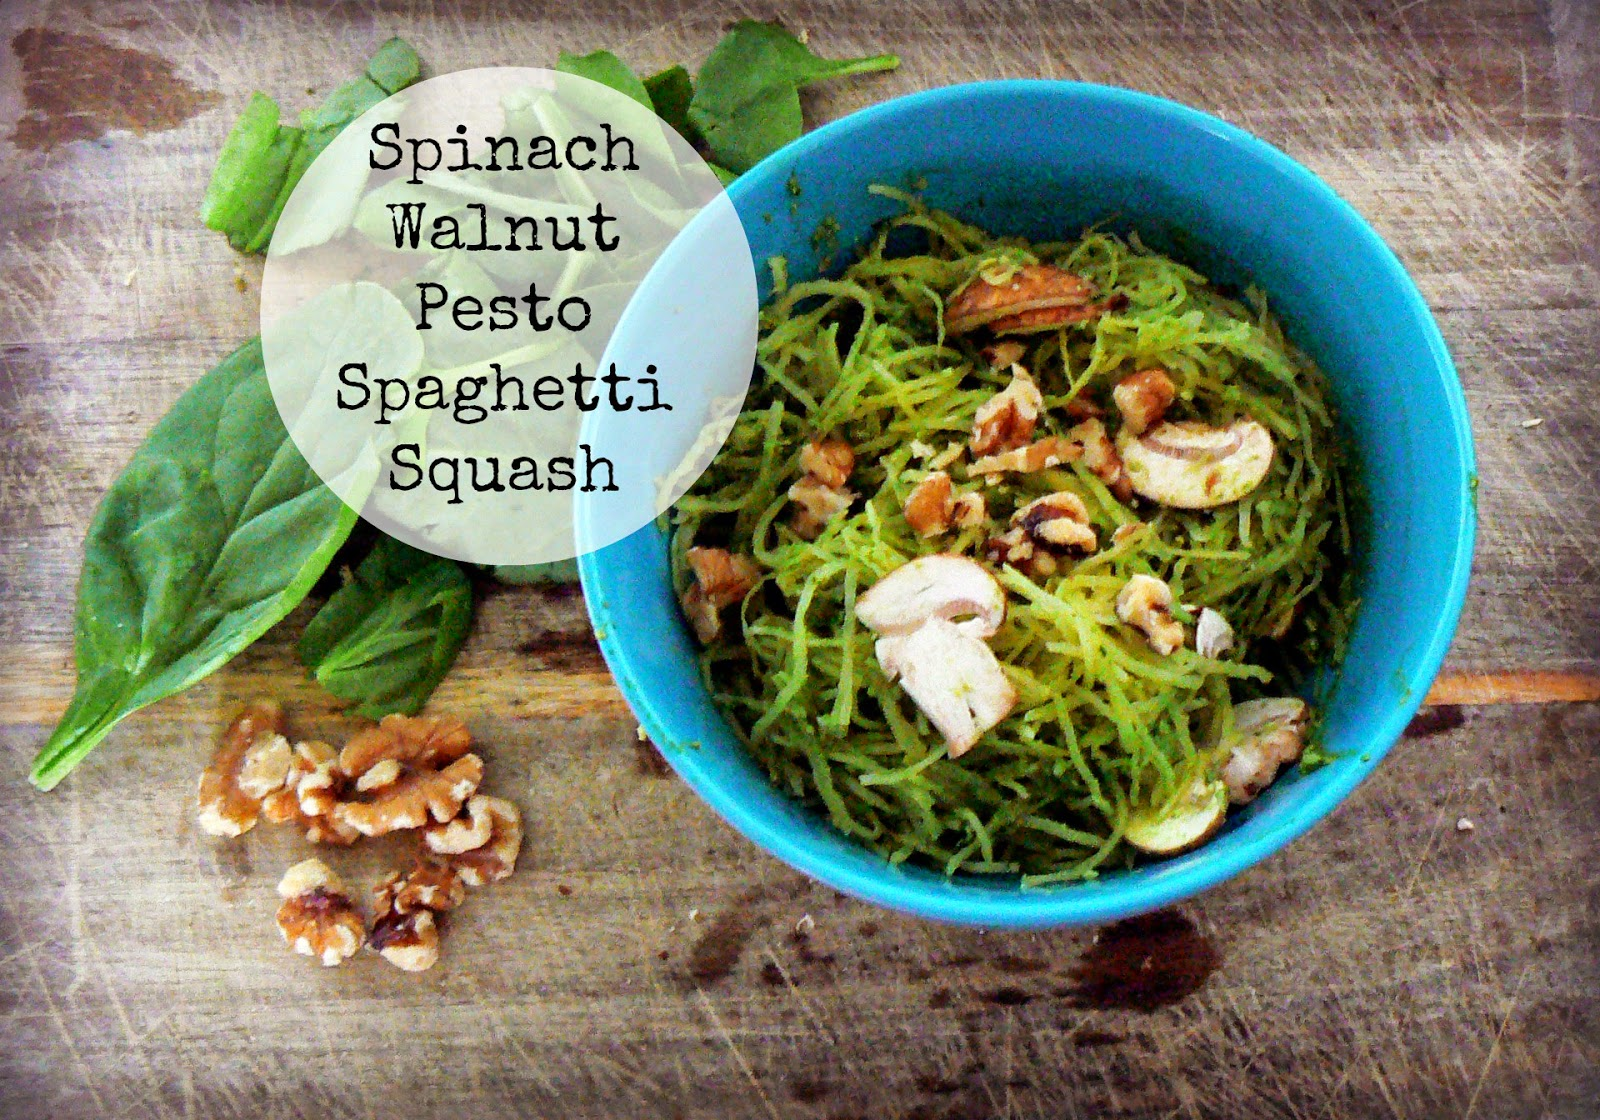 spaghetti squash with pesto, spinach, and walnuts